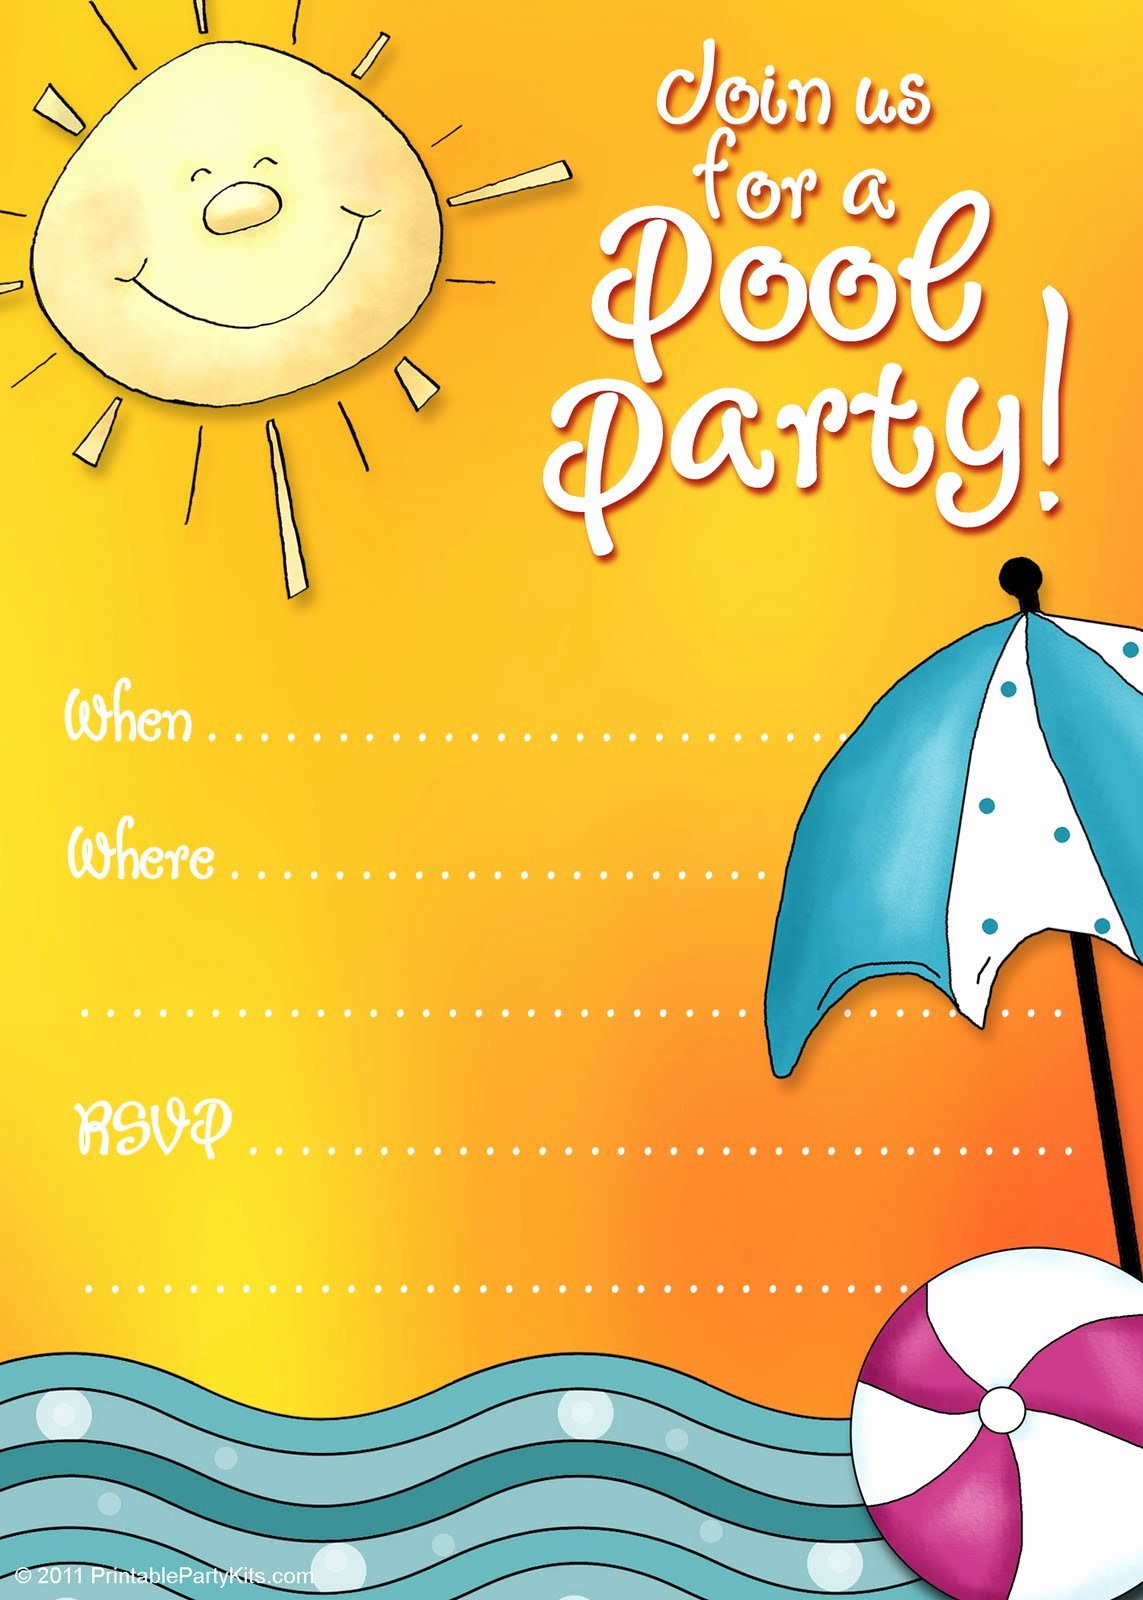 Party Invitation Template Free Elegant Free Printable Party Invitations Summer Pool Party Invites